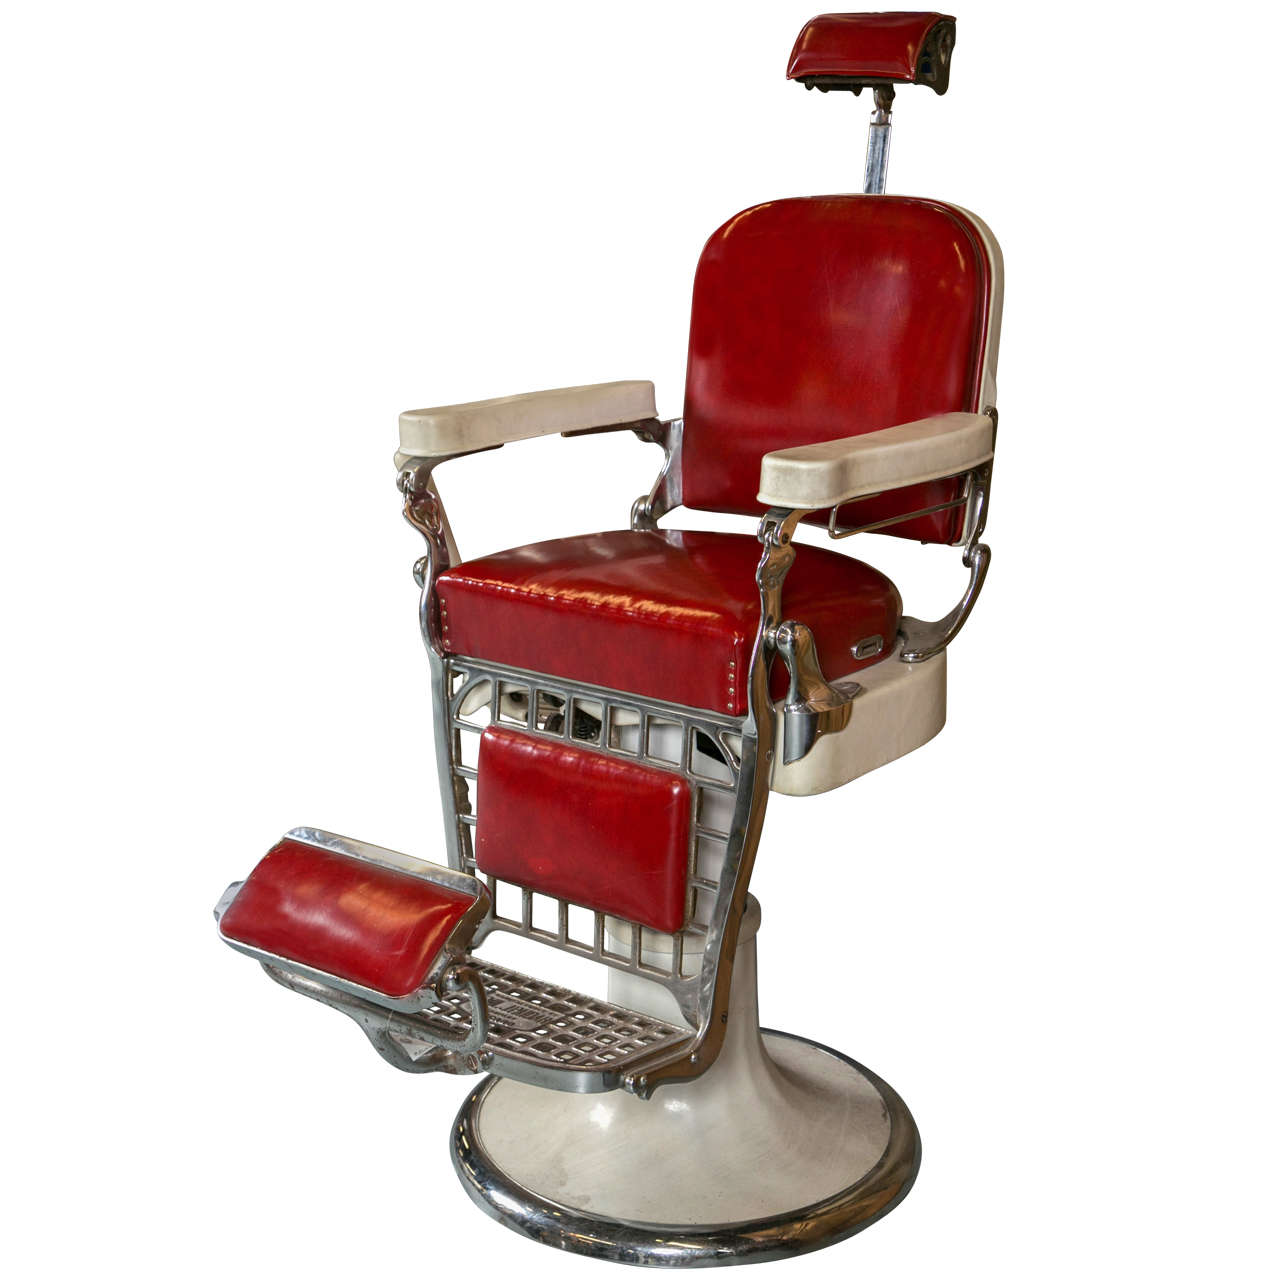 Antique Emil J. Paidar Barber Chair at 1stdibs